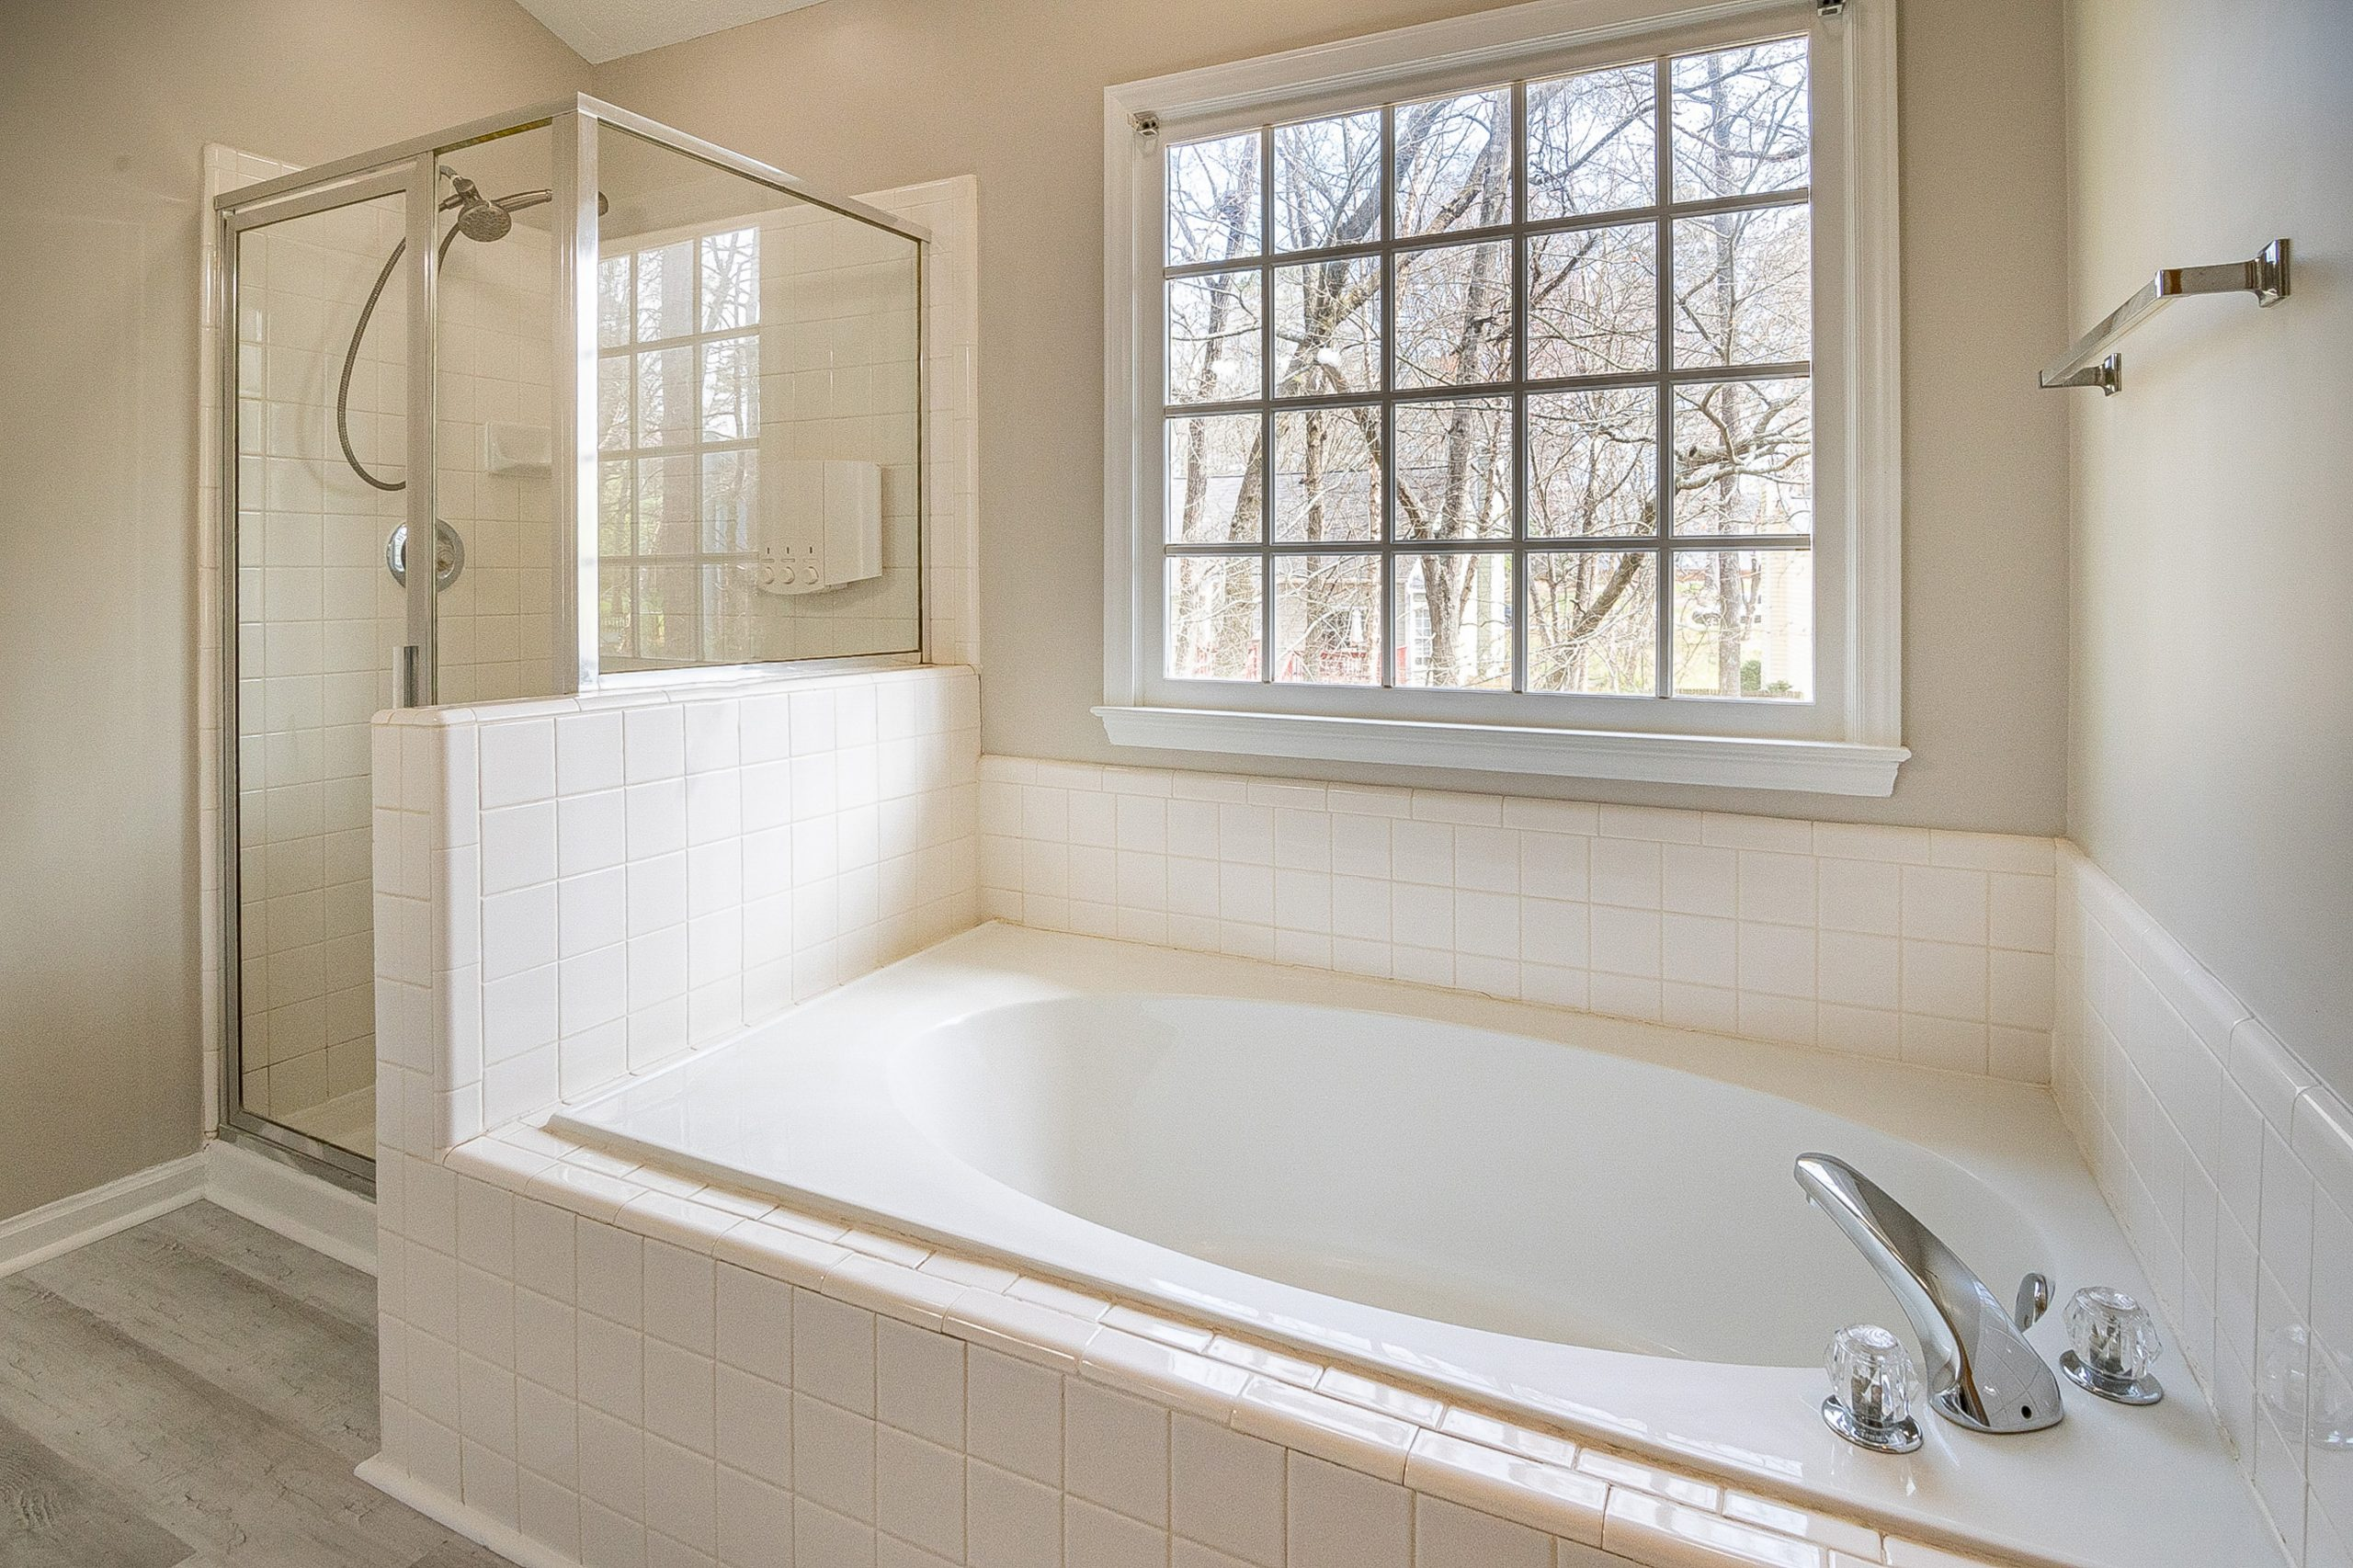 What To Expect With Complete Bathroom Renovations